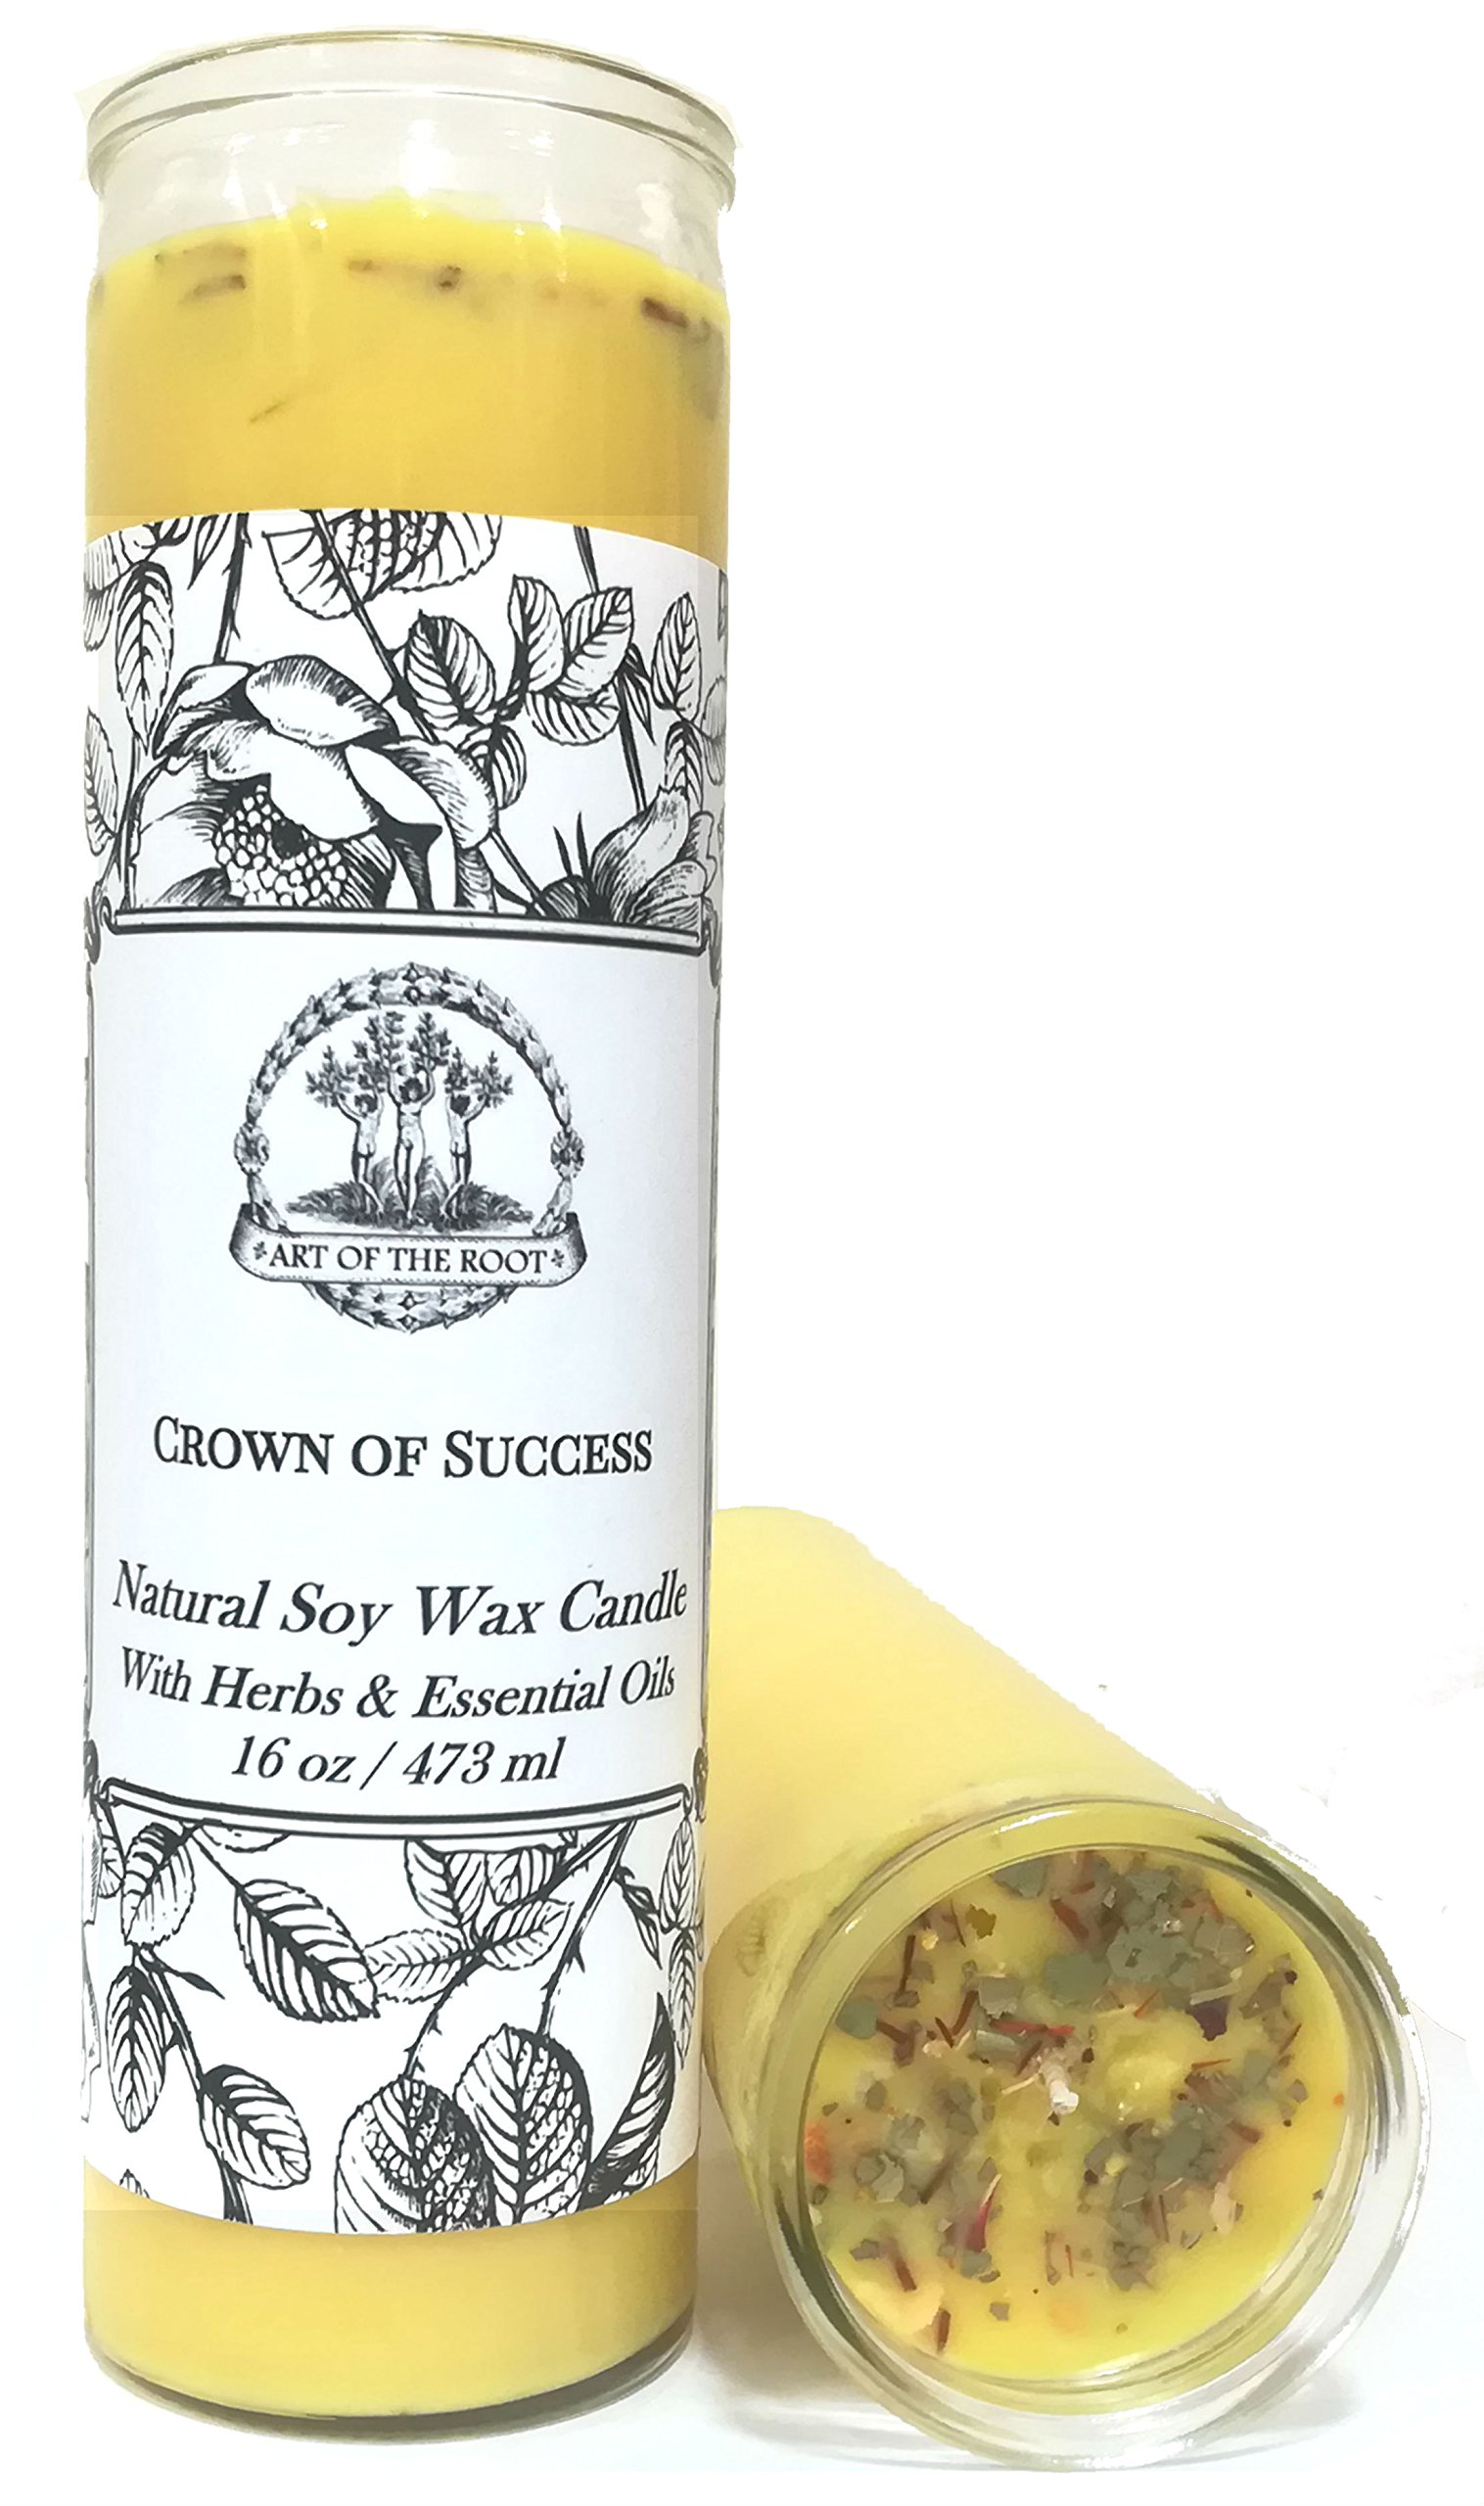 Art of the Root Crown of Success Scented 7 Day SOY Herbal Spell Candle (Fixed) Prosperity, Favorable Outcomes, Achievement & Obtaining Goals (Wiccan, Pagan, Hoodoo, Magick) by Art of the Root